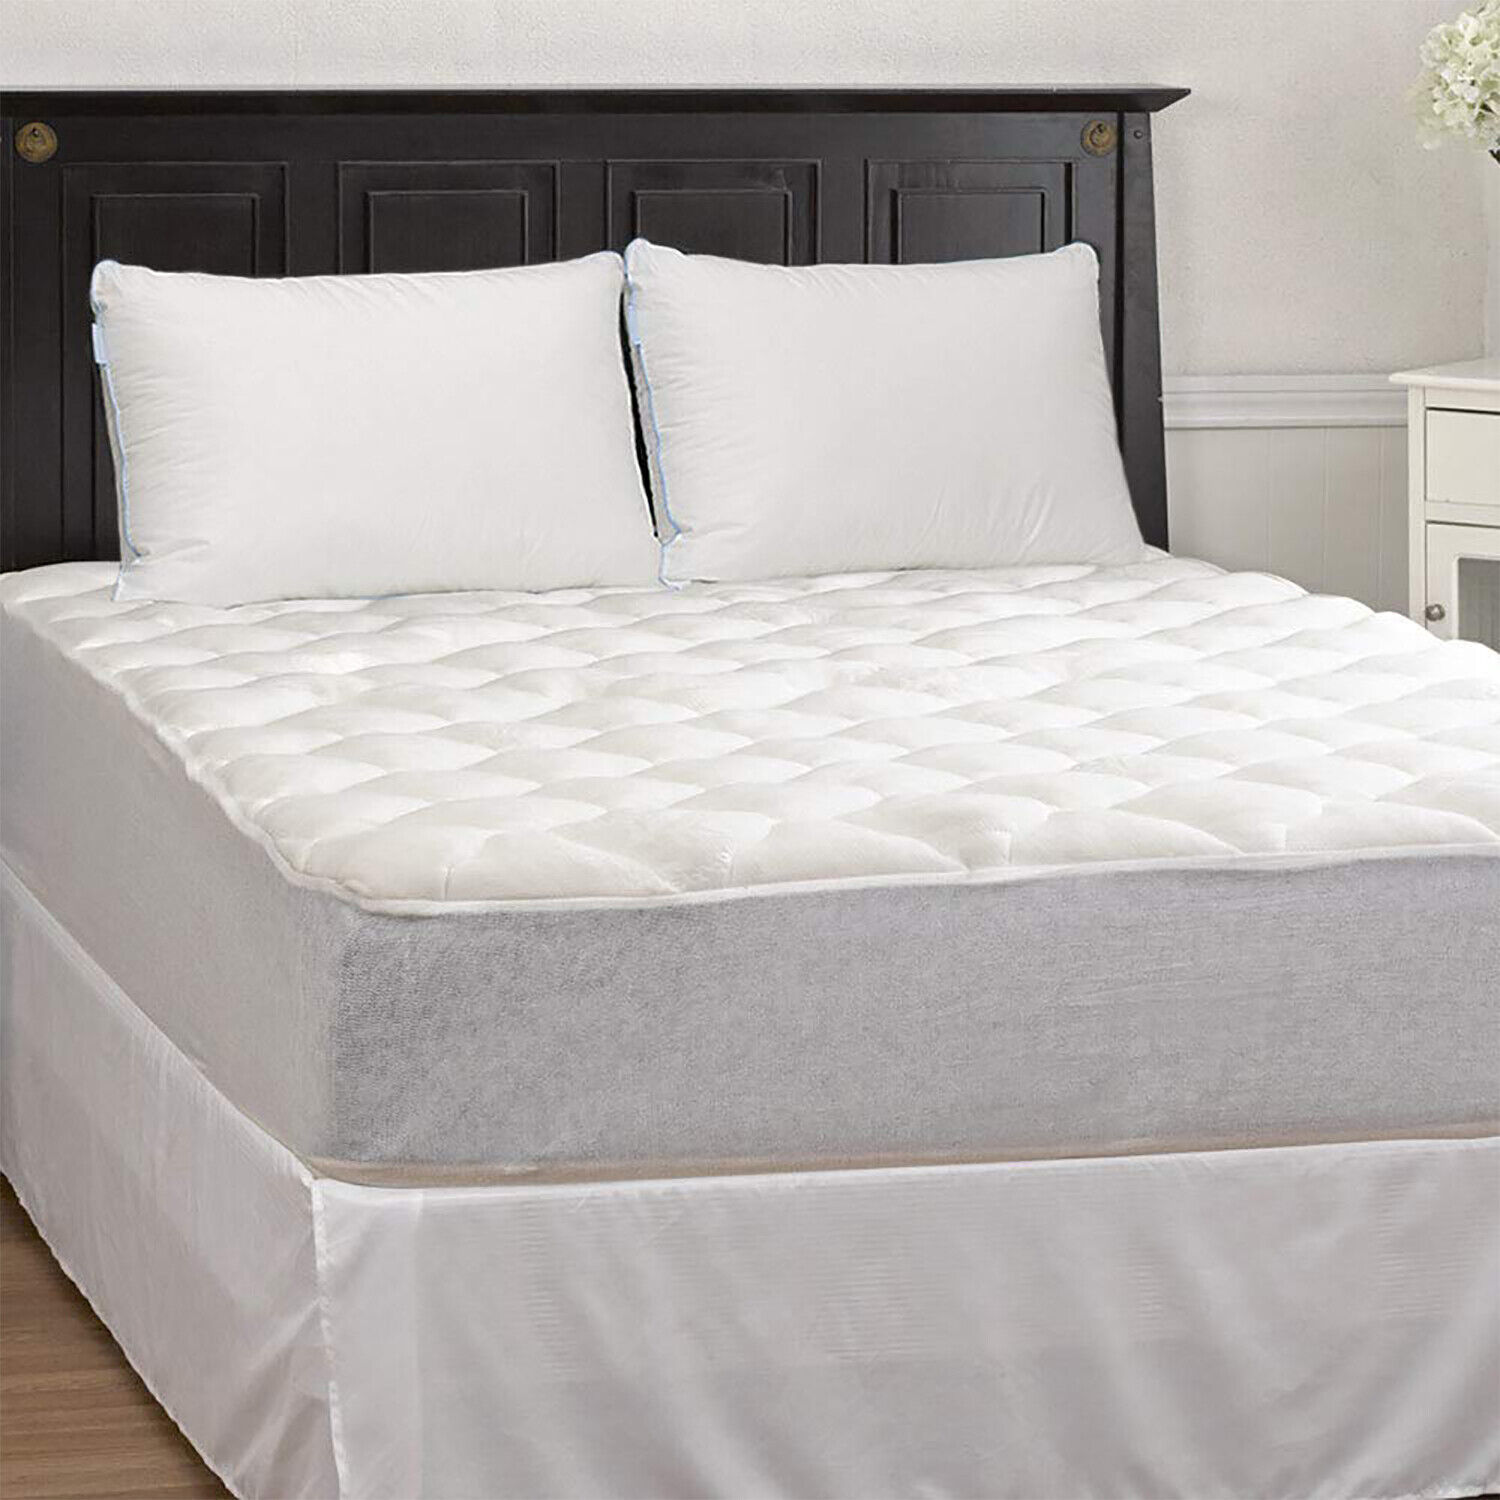 Thick Bamboo Mattress Topper Cooling Matress Pad Extra Plush